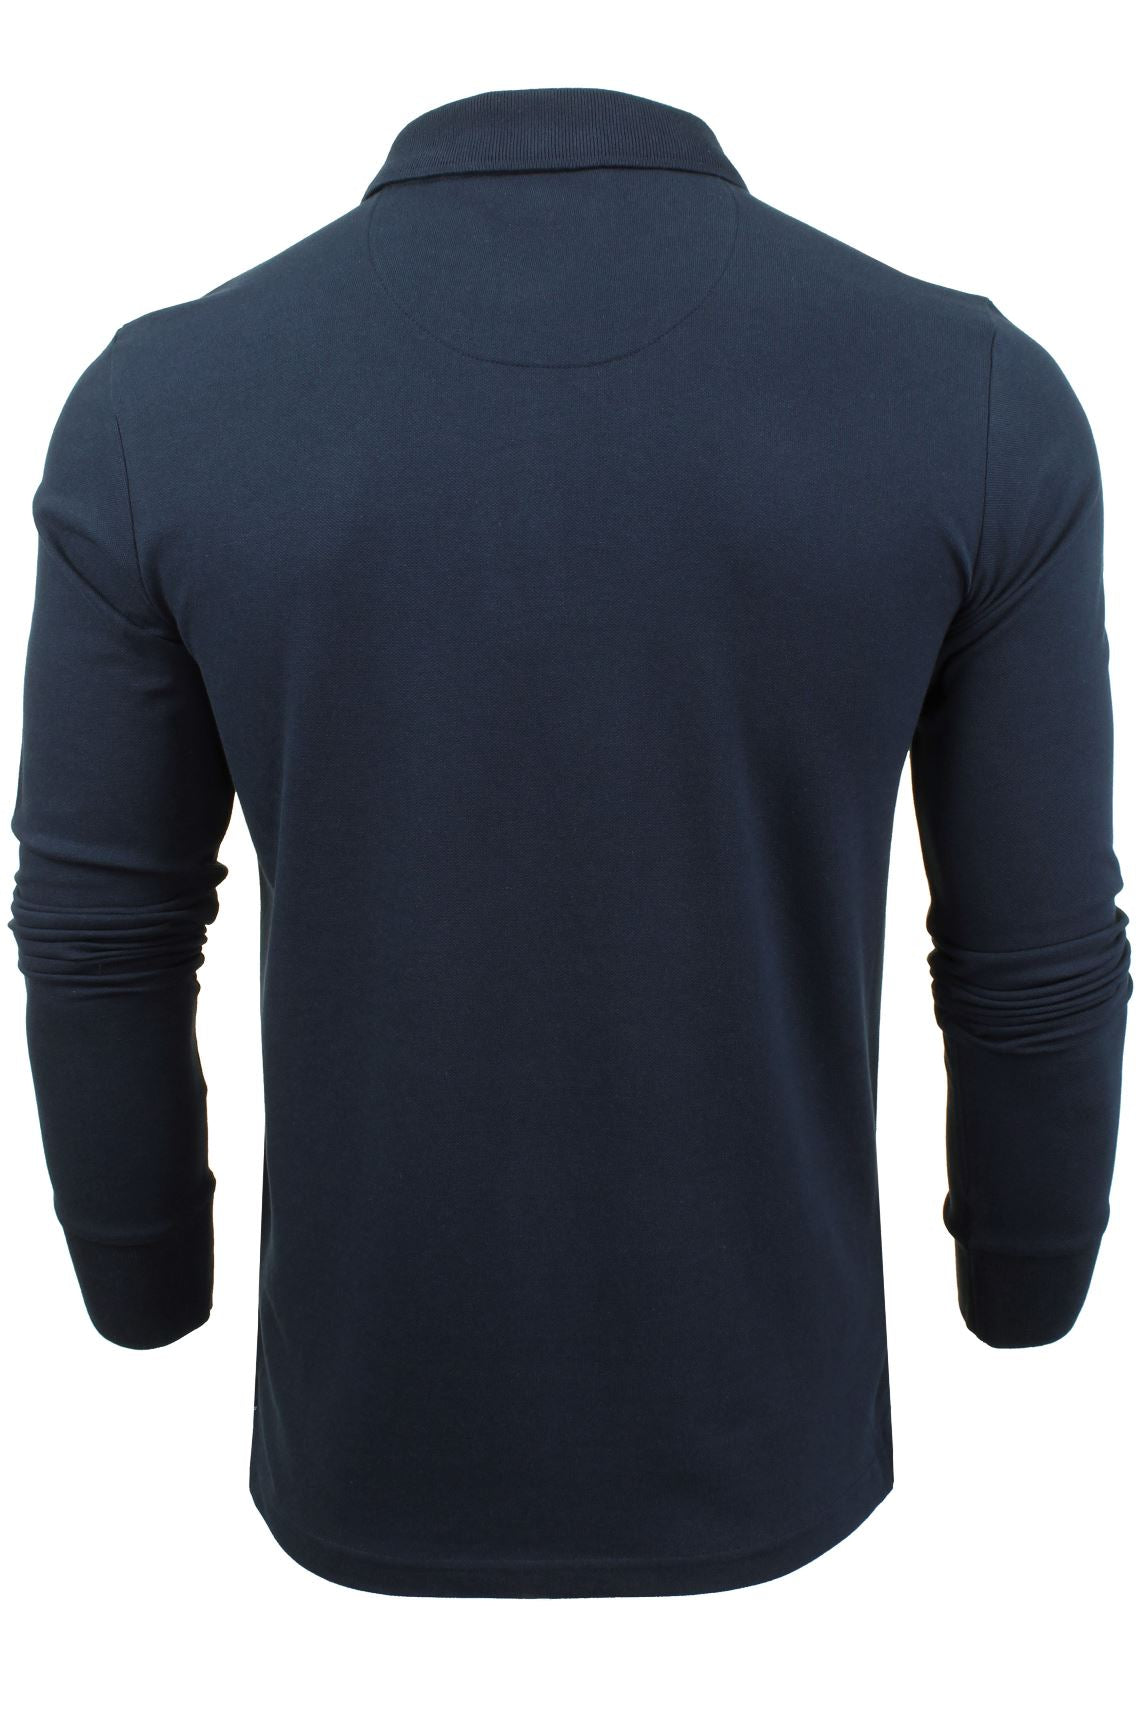 Mens Polo T-Shirt by Xact Pique Long Sleeved_03_XP1003_Ocean Blue